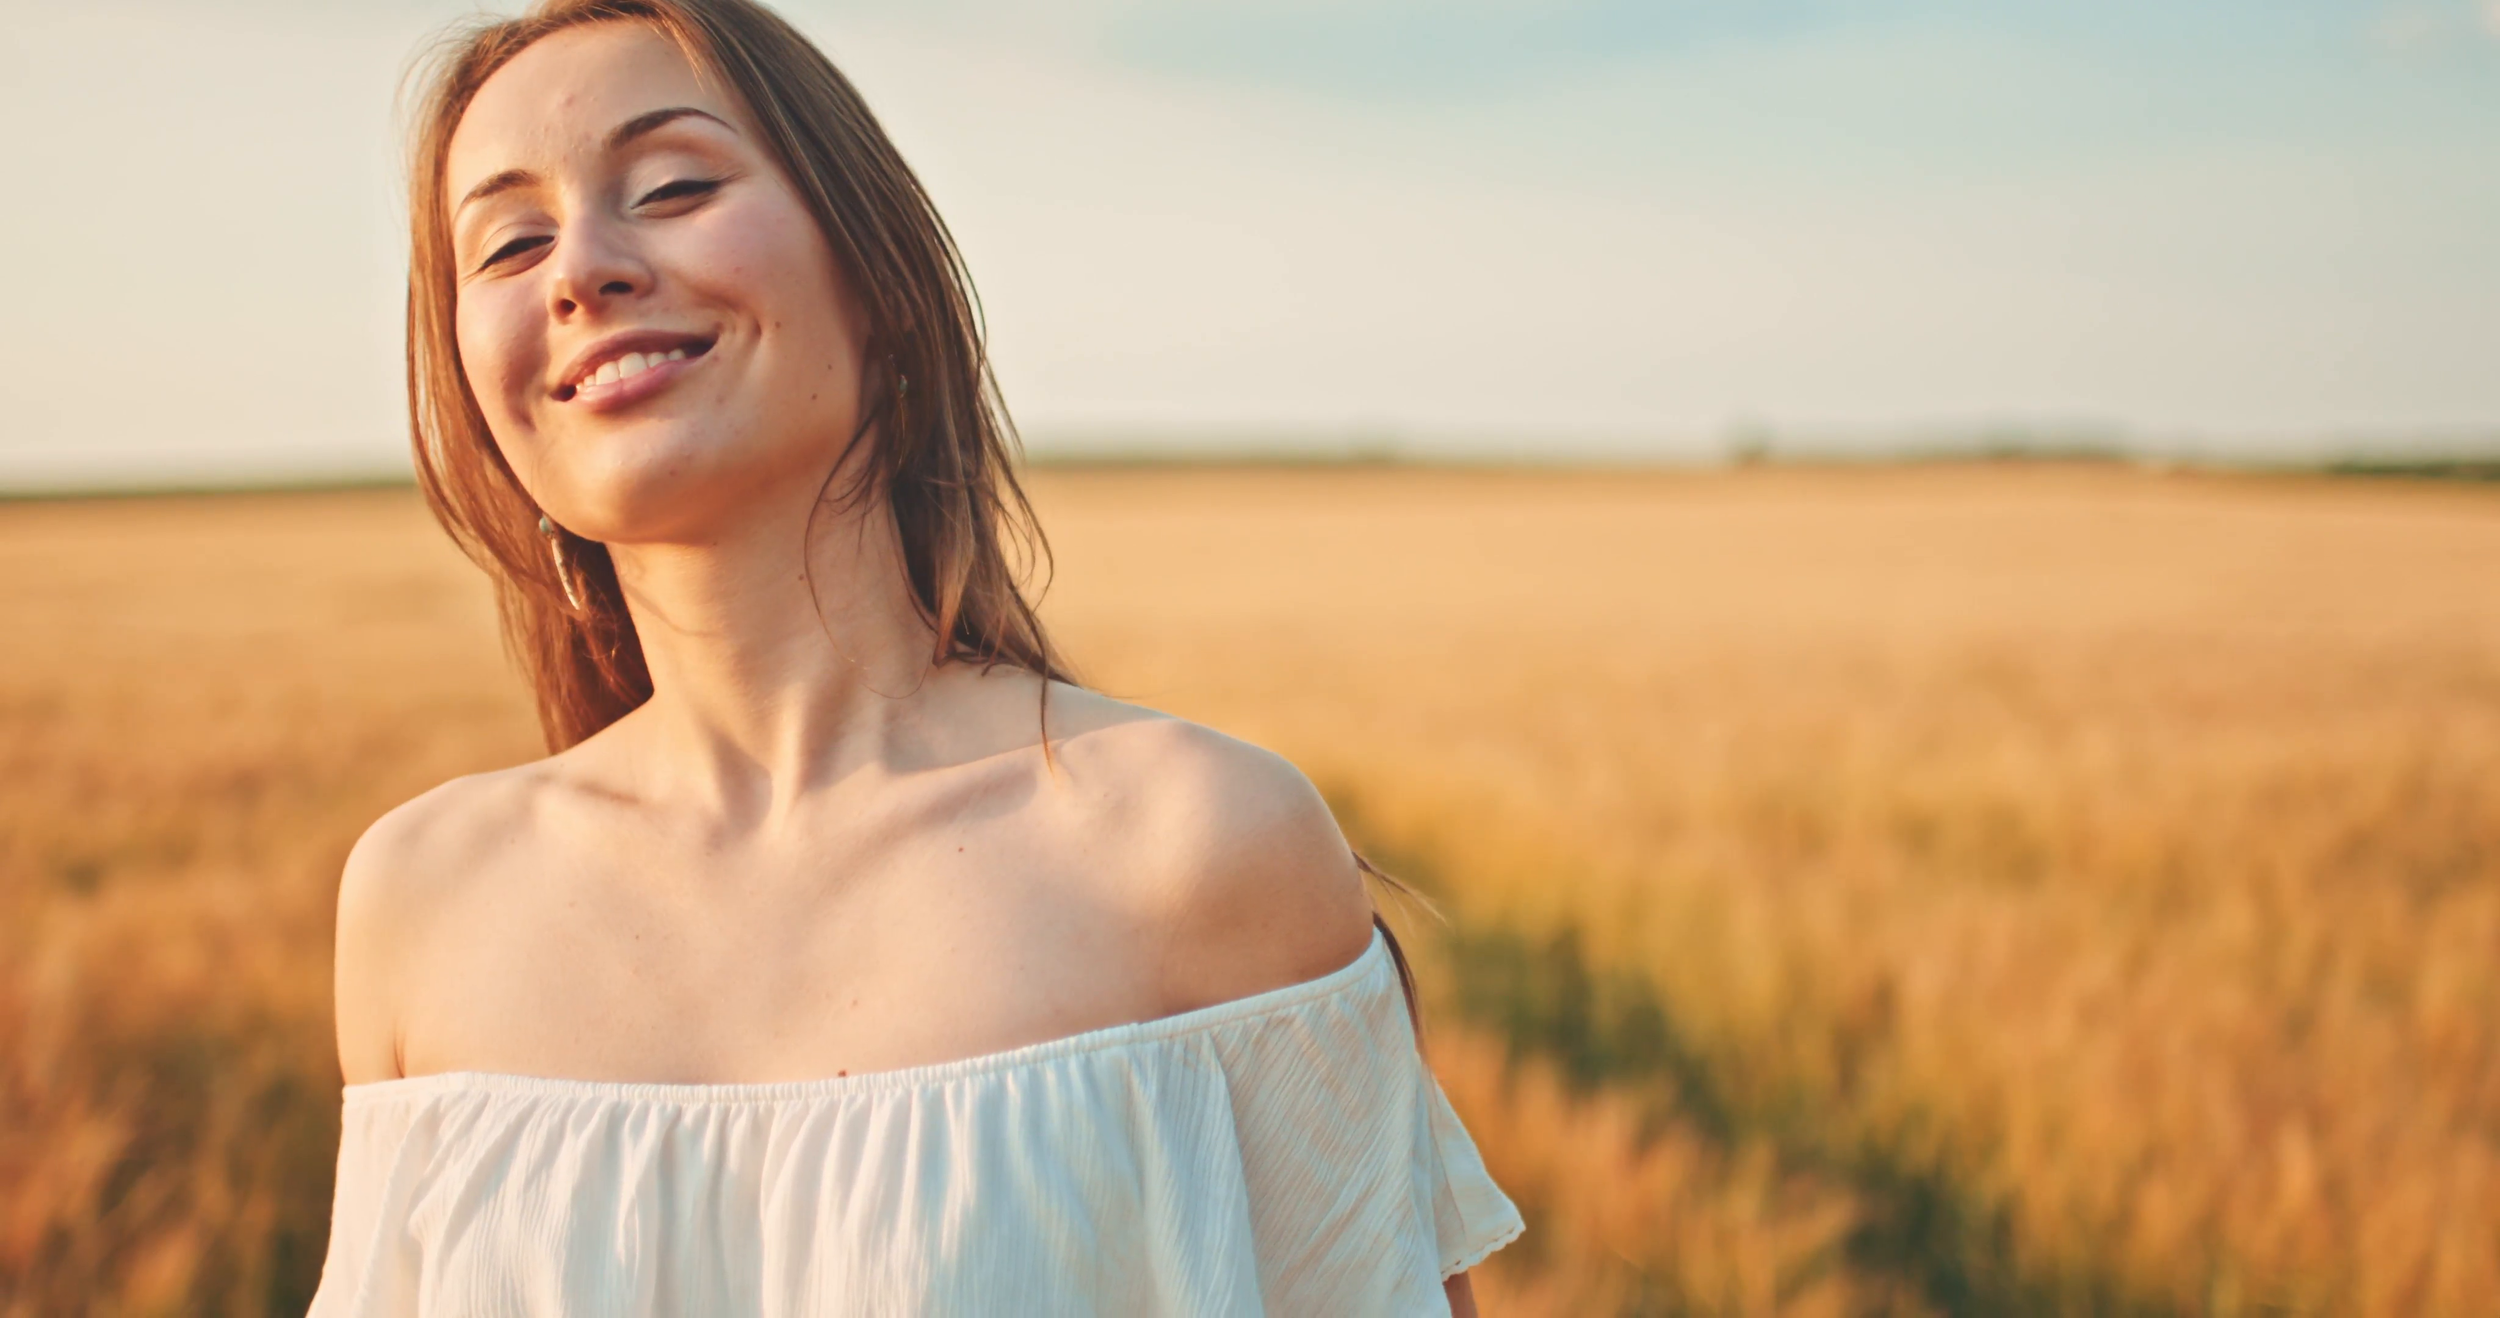 beautiful-girl-running-on-sunlit-wheat-field-slow-motion-120-fps-freedom-concept-happy-woman-having-fun-outdoors-in-a-wheat-field-on-sunset-or-sunrise-slowmo-harvest_4wzyqqe4il__F0000.png